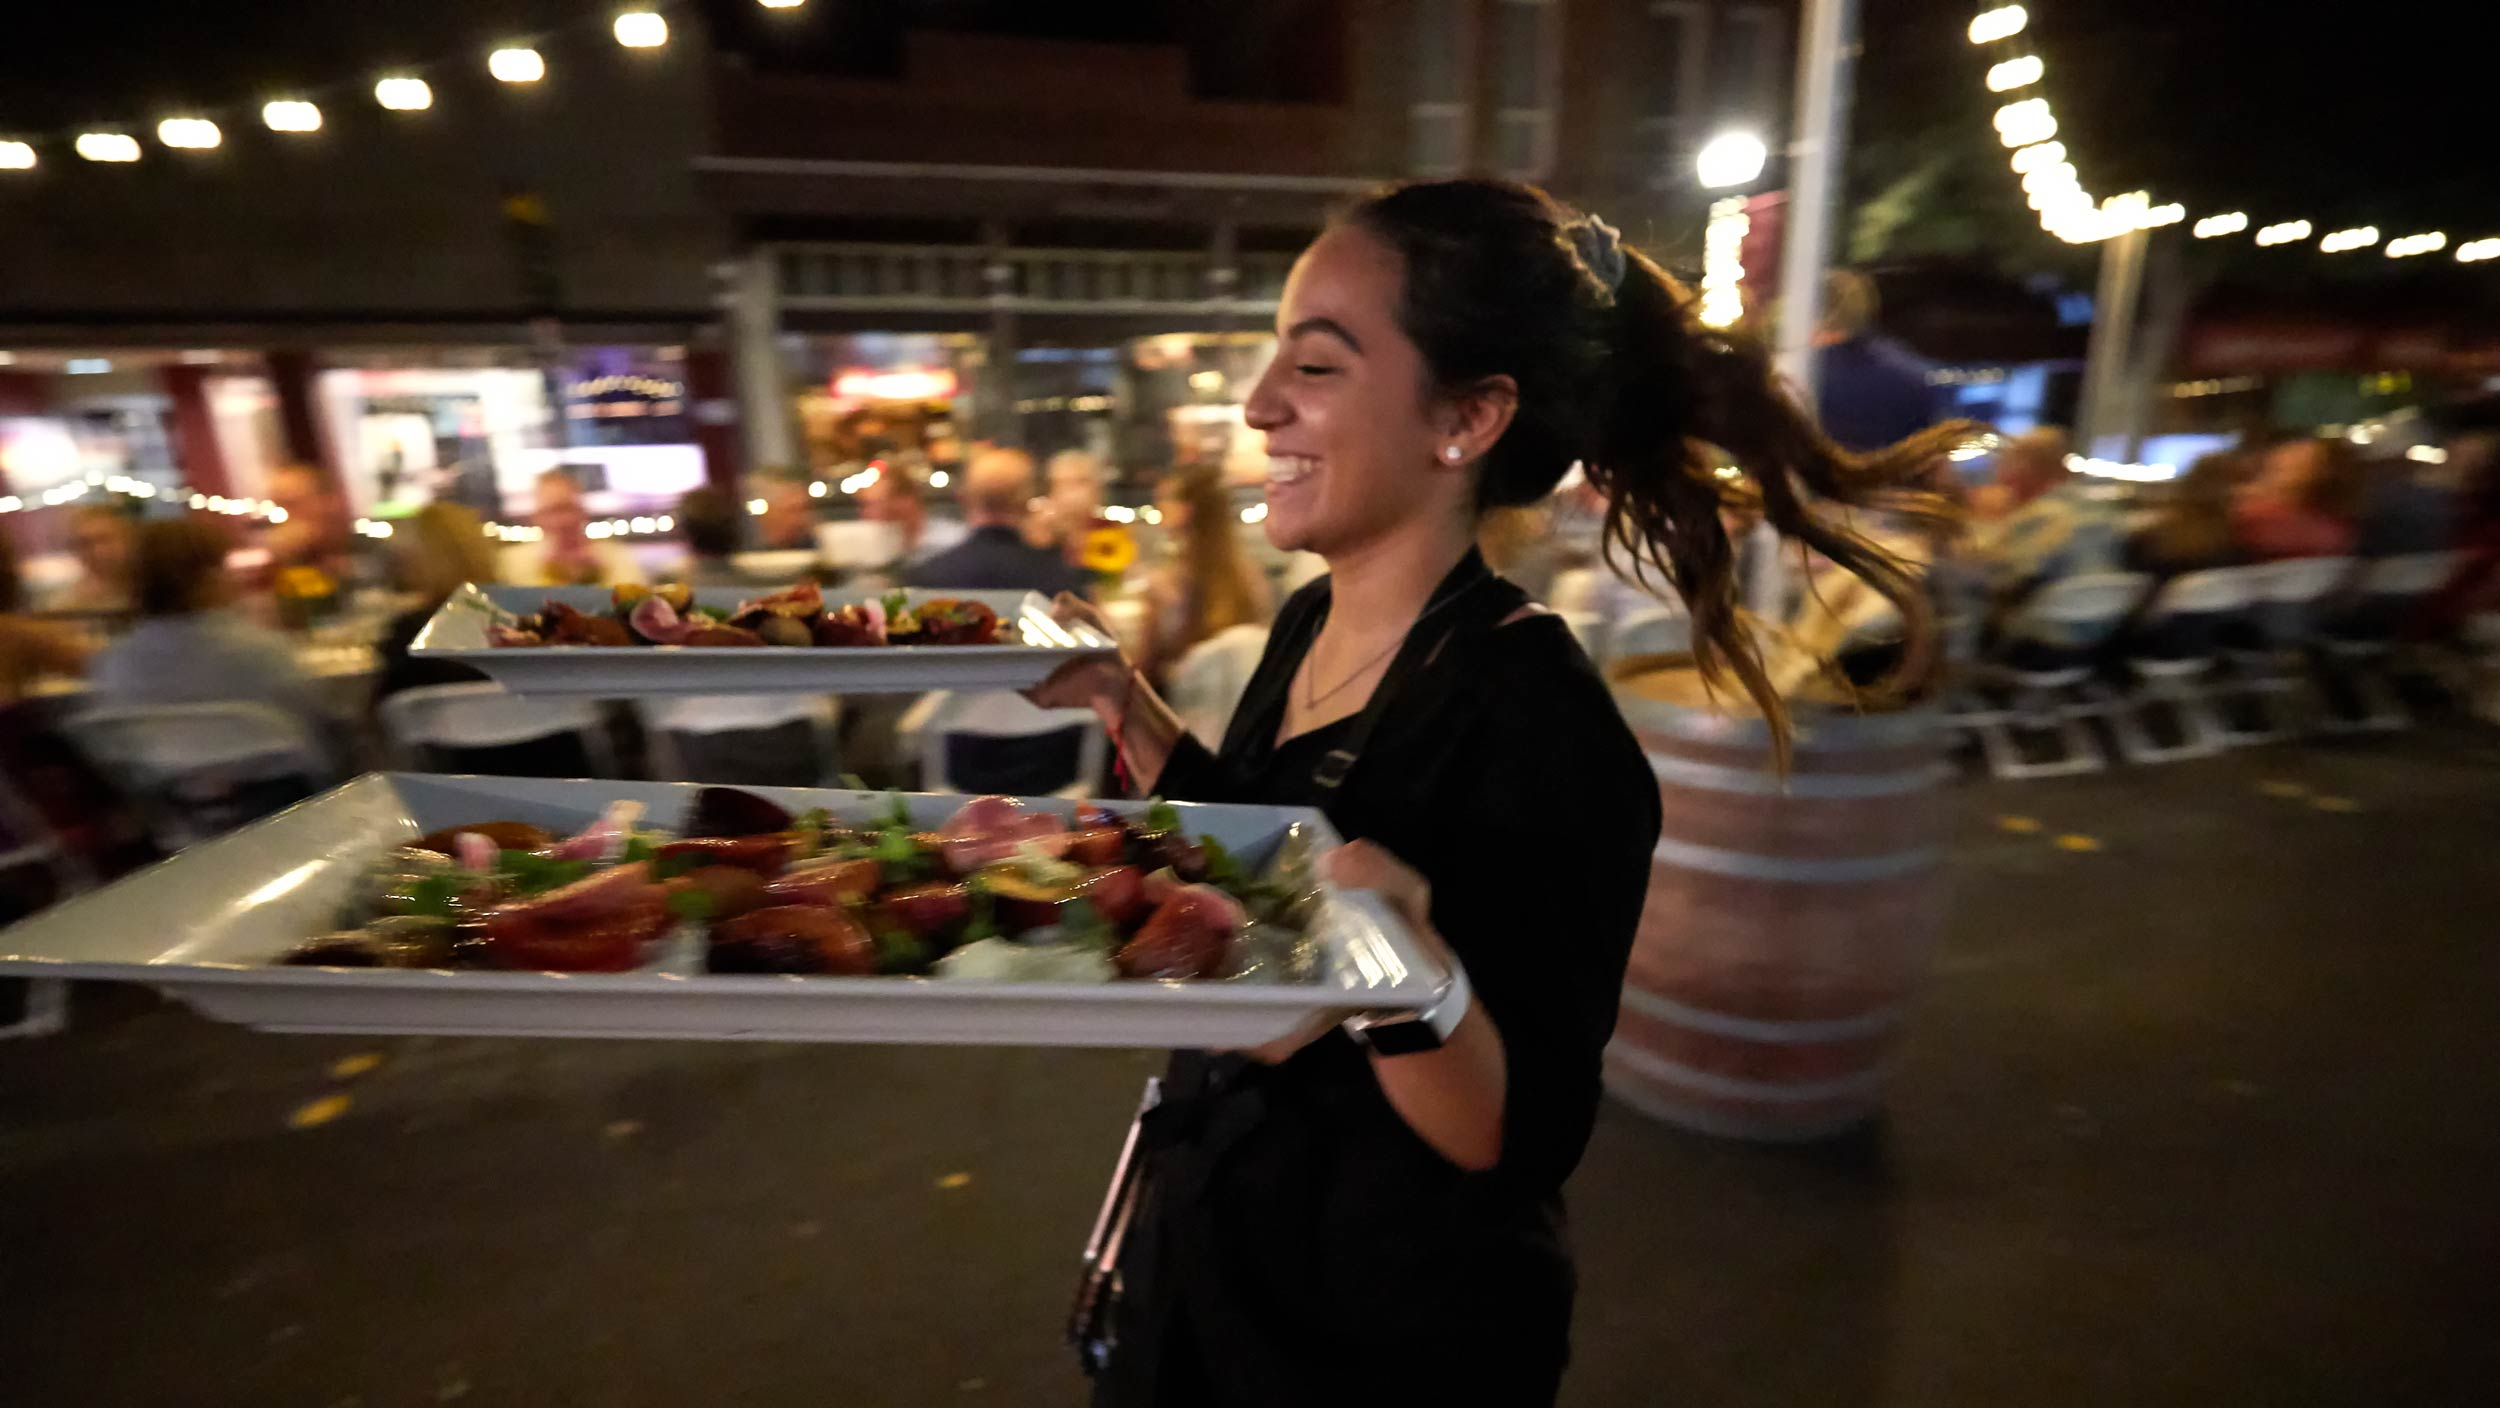 Server Brings Salad to diners at Dinner on Main